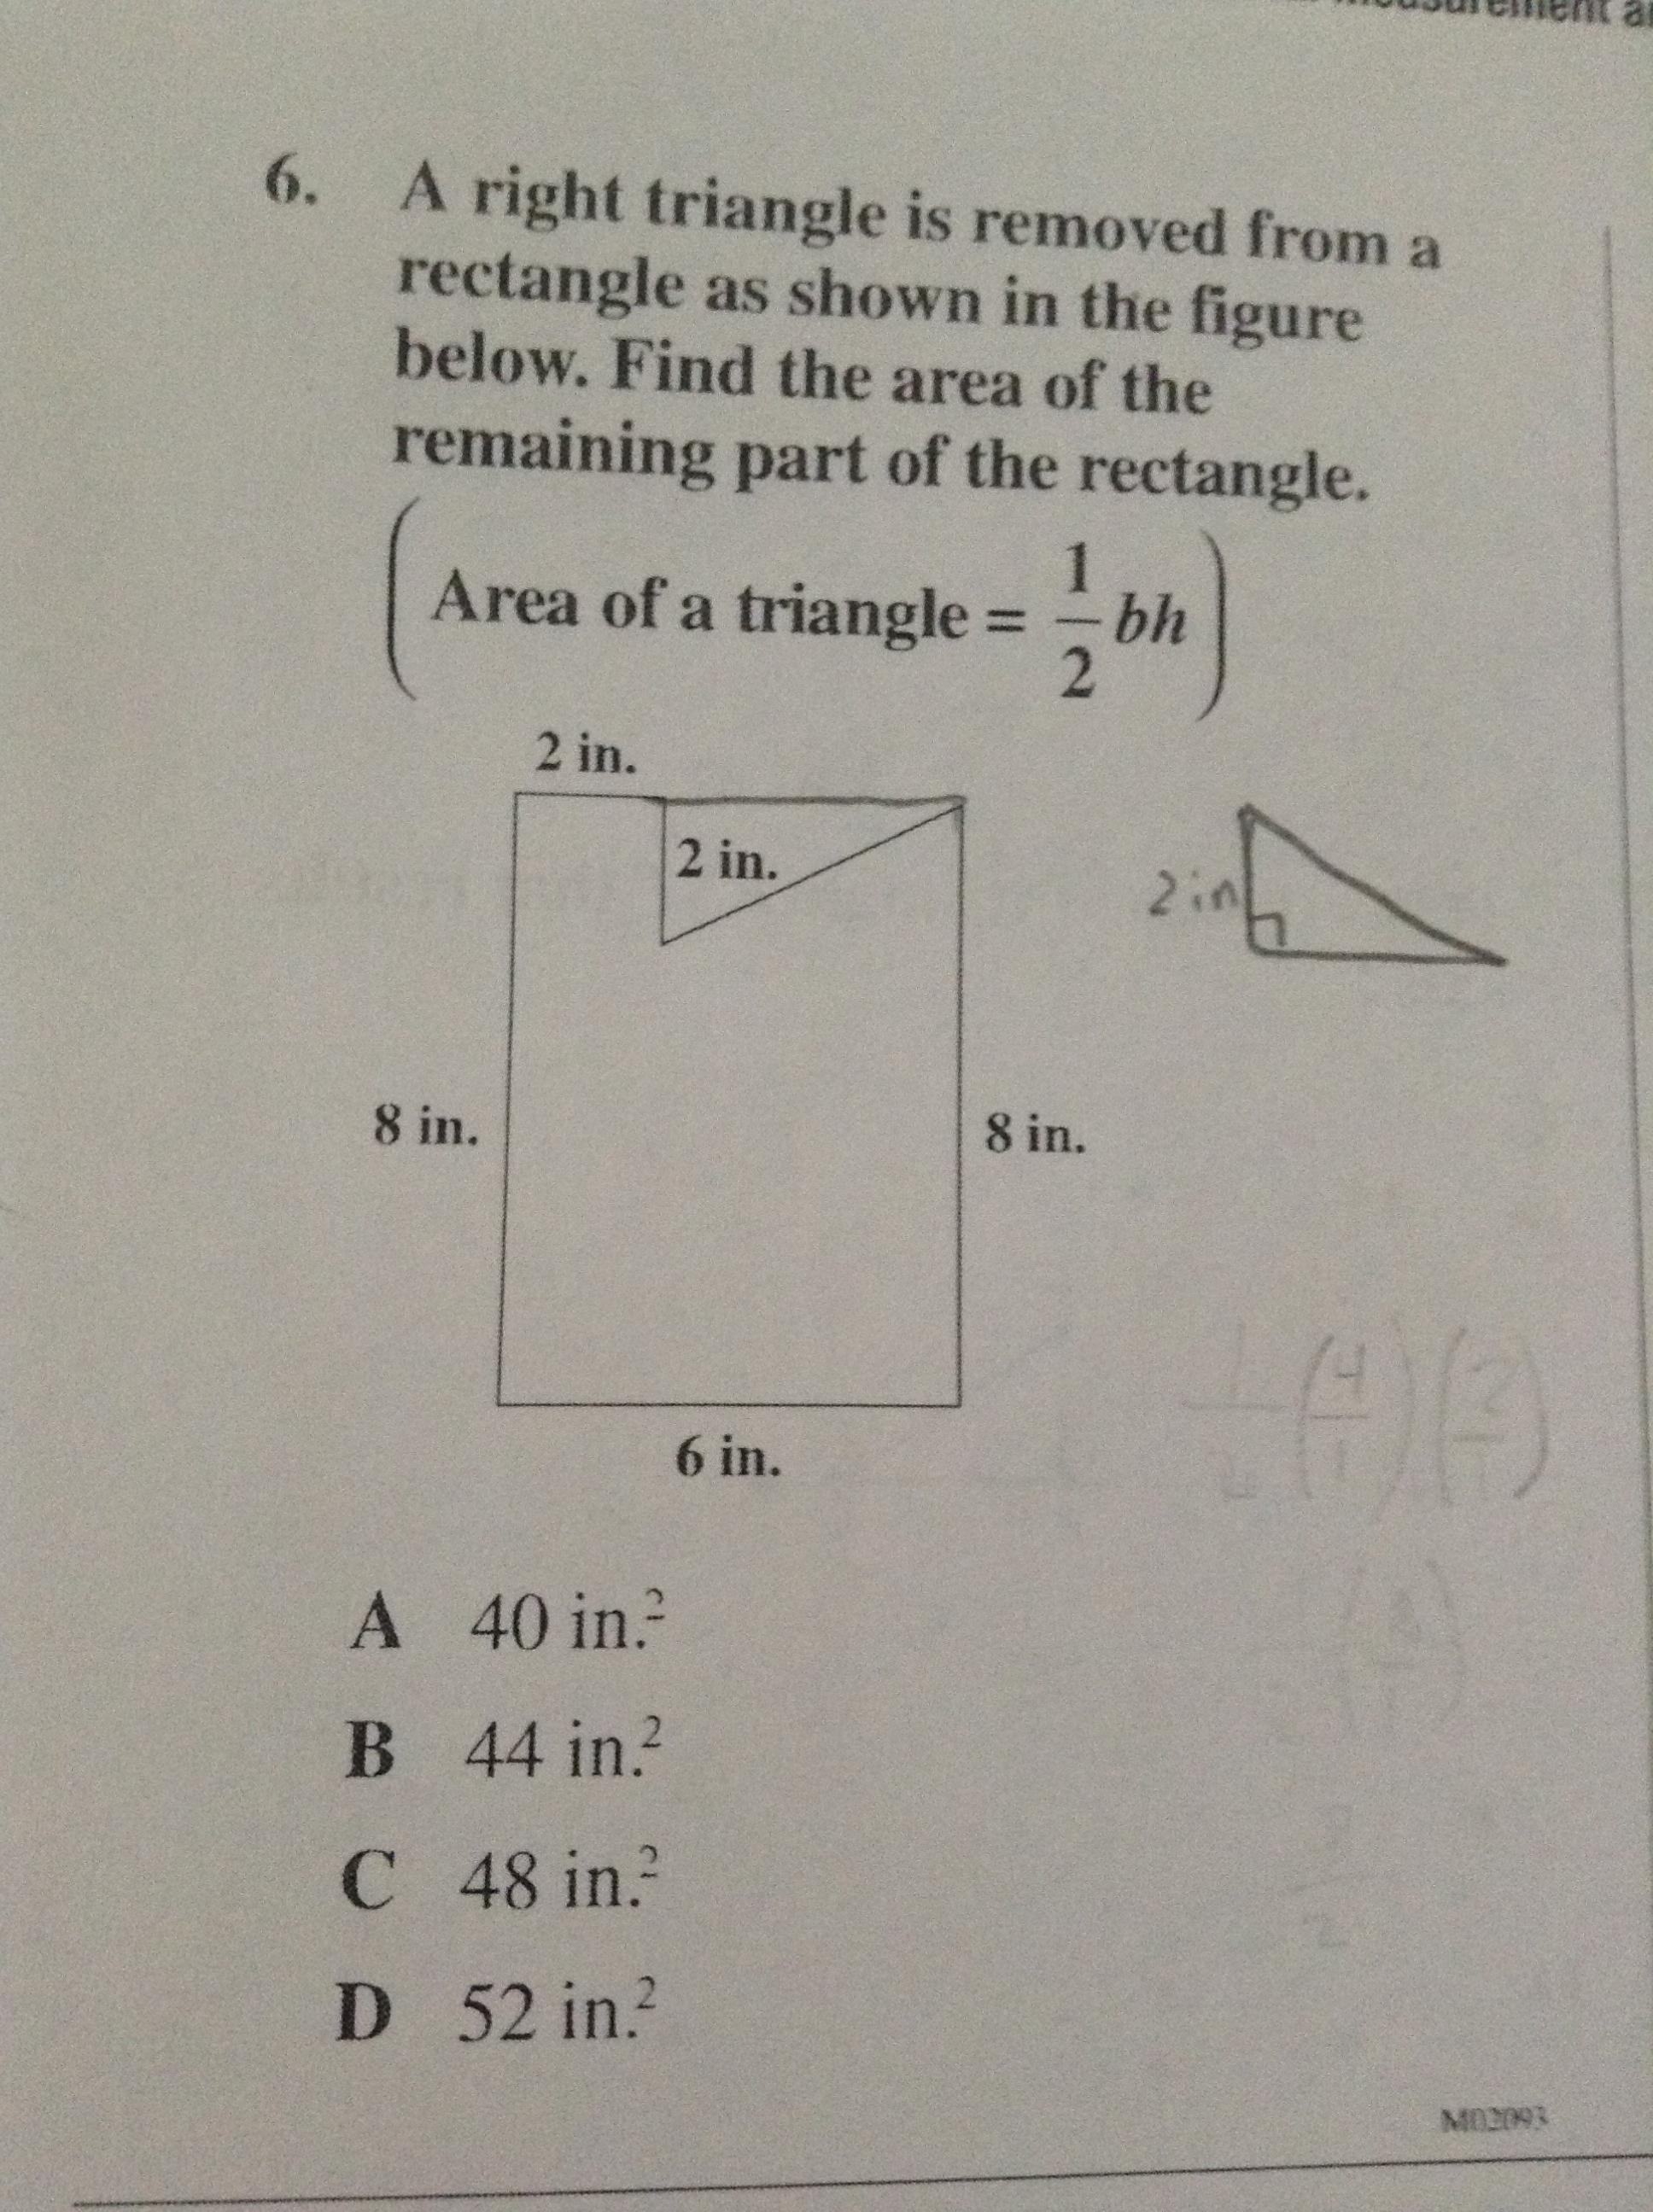 A Right Triangle Is Removed From A Rectangle As Shown In The How To Find The